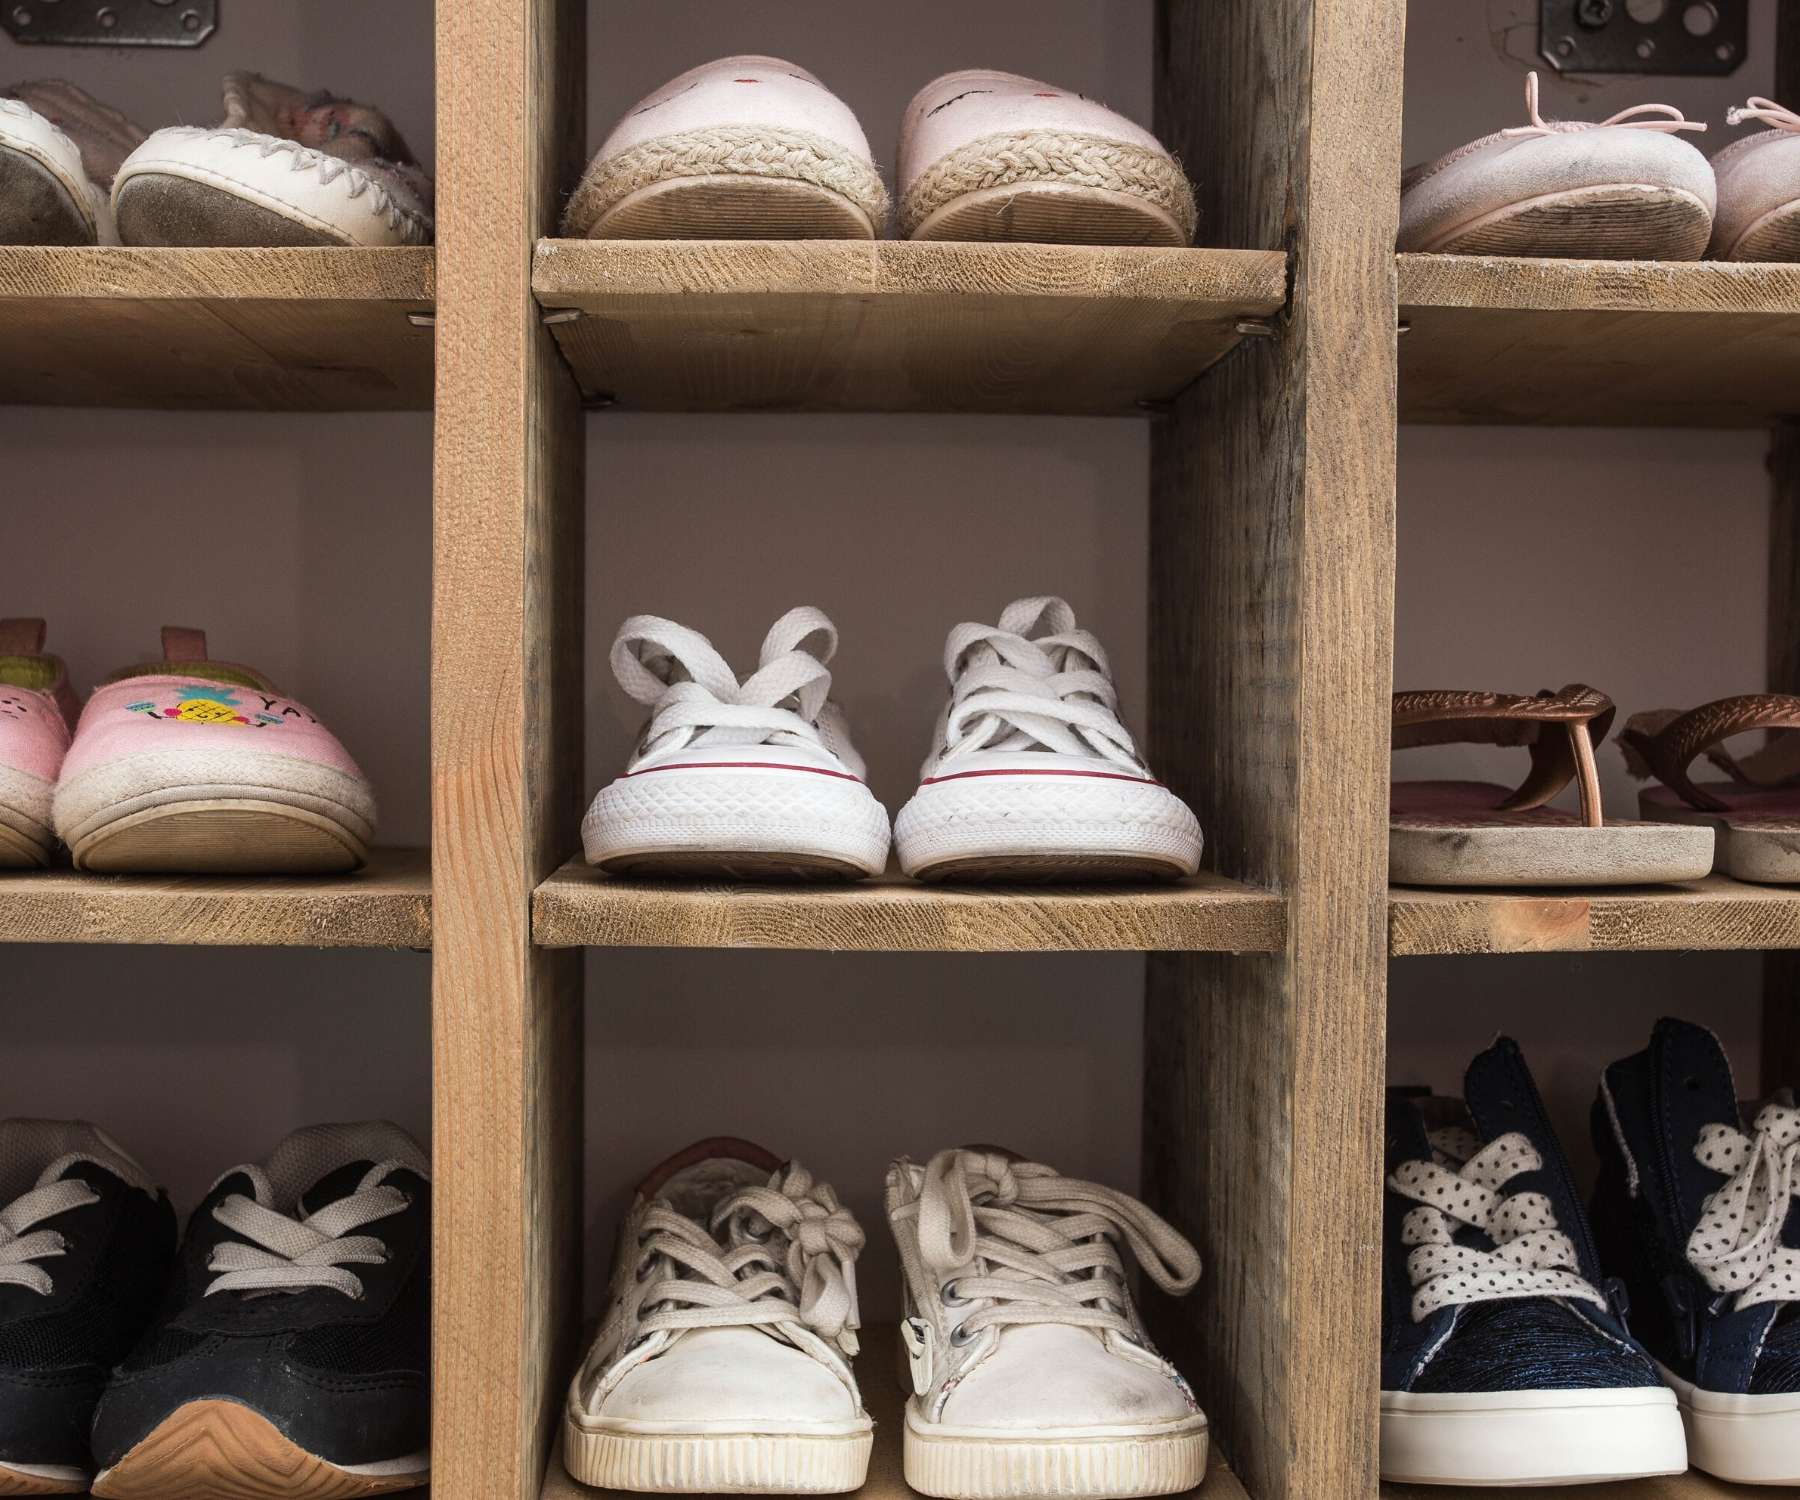 wooden shoe storage unit with shoes in it